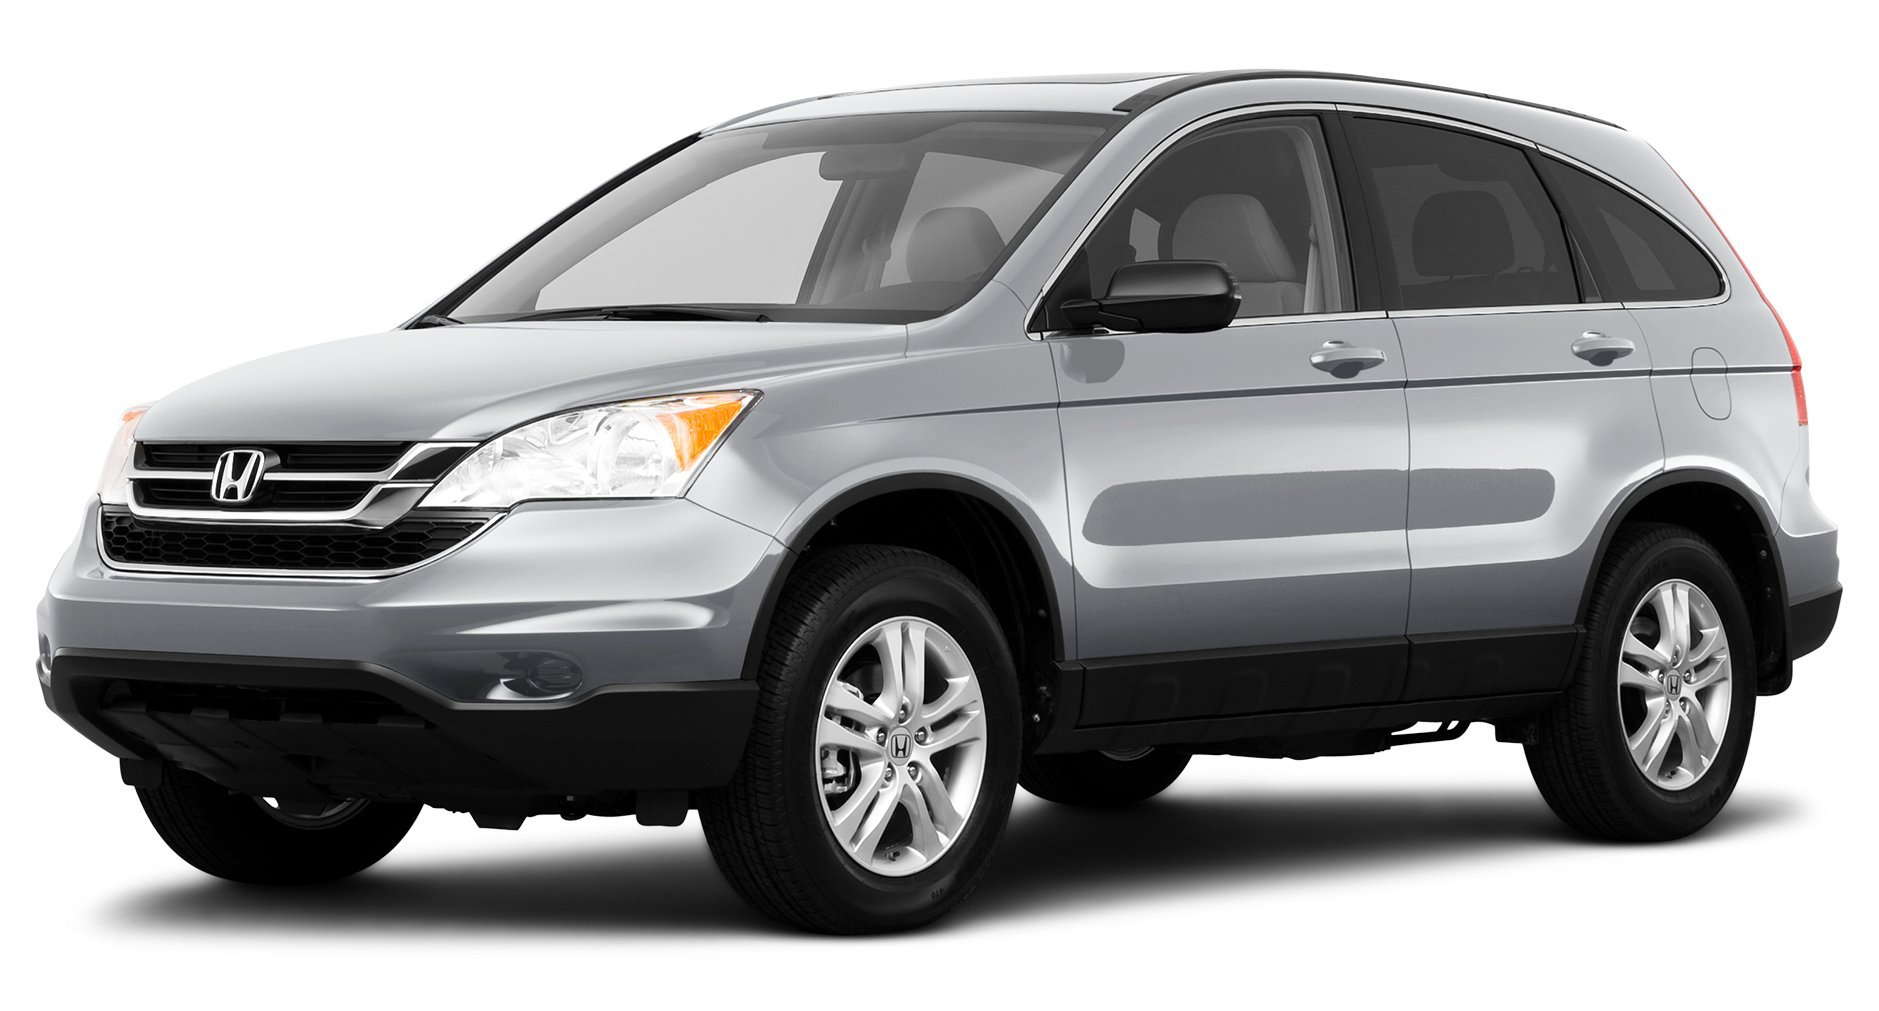 2010 honda cr v reviews images and specs for Truecar com honda crv